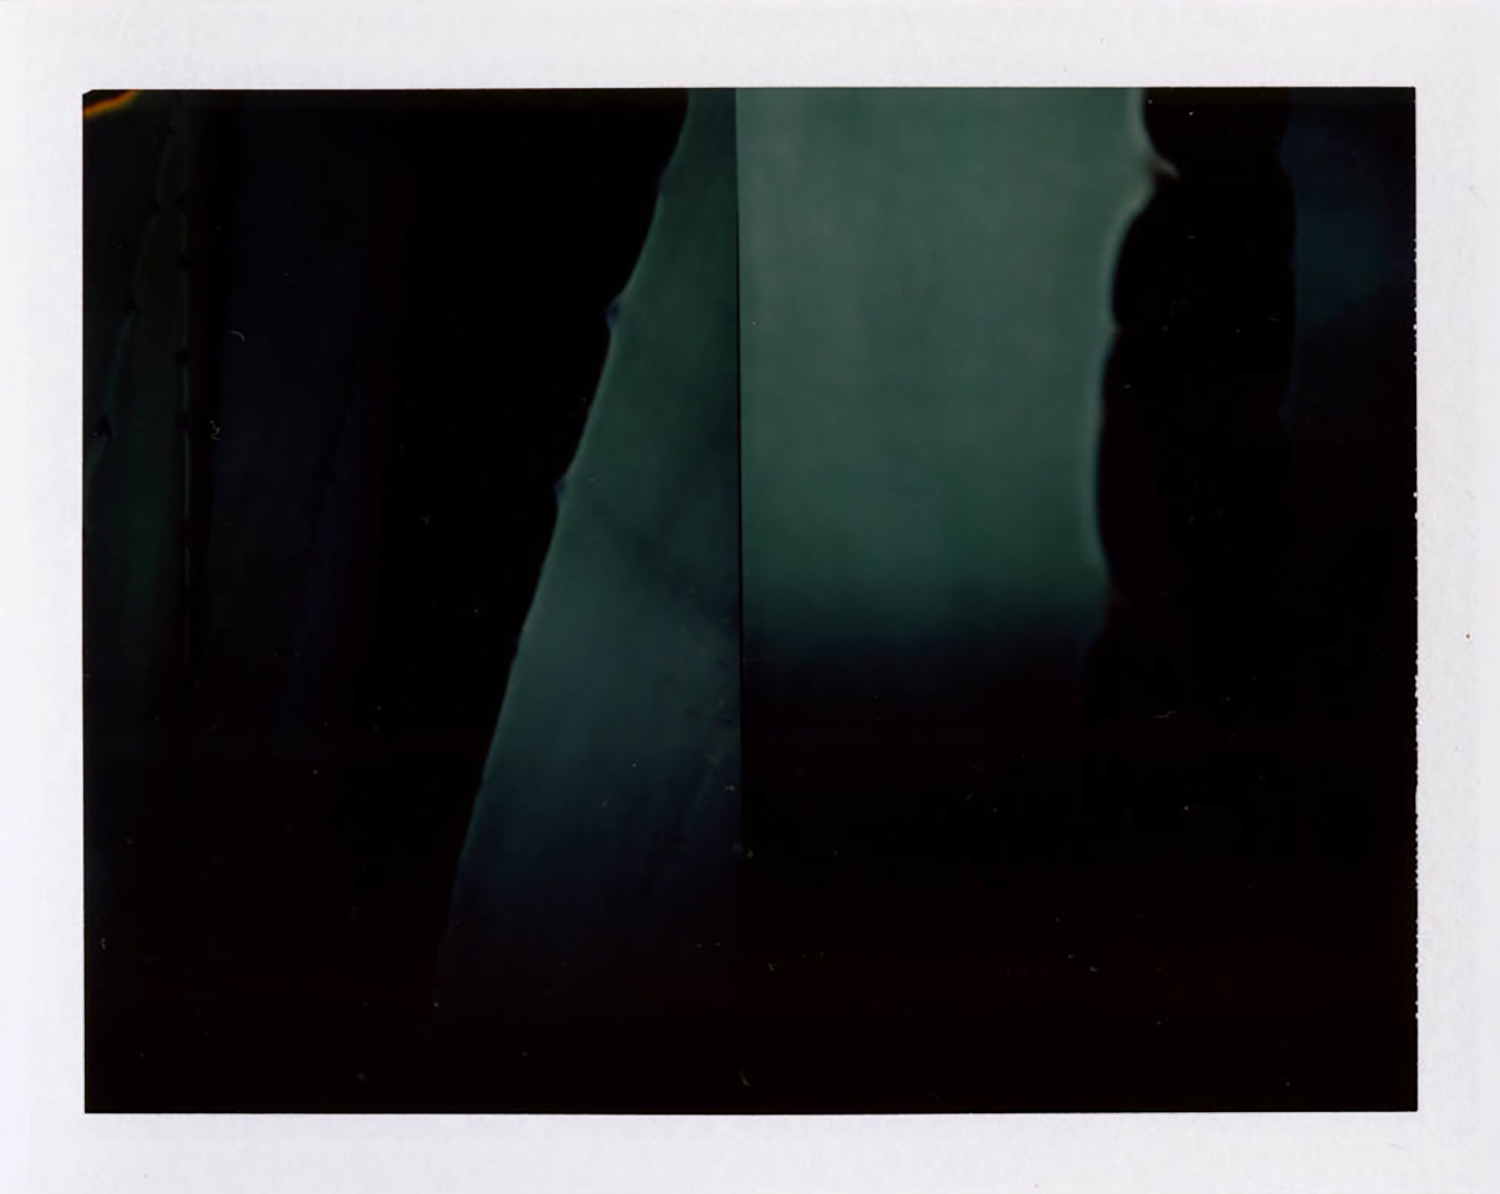 I.D.012, The Polaroid Revolutionary Workers, 2013, Polaroid Picture, 107mm x 86mm 2